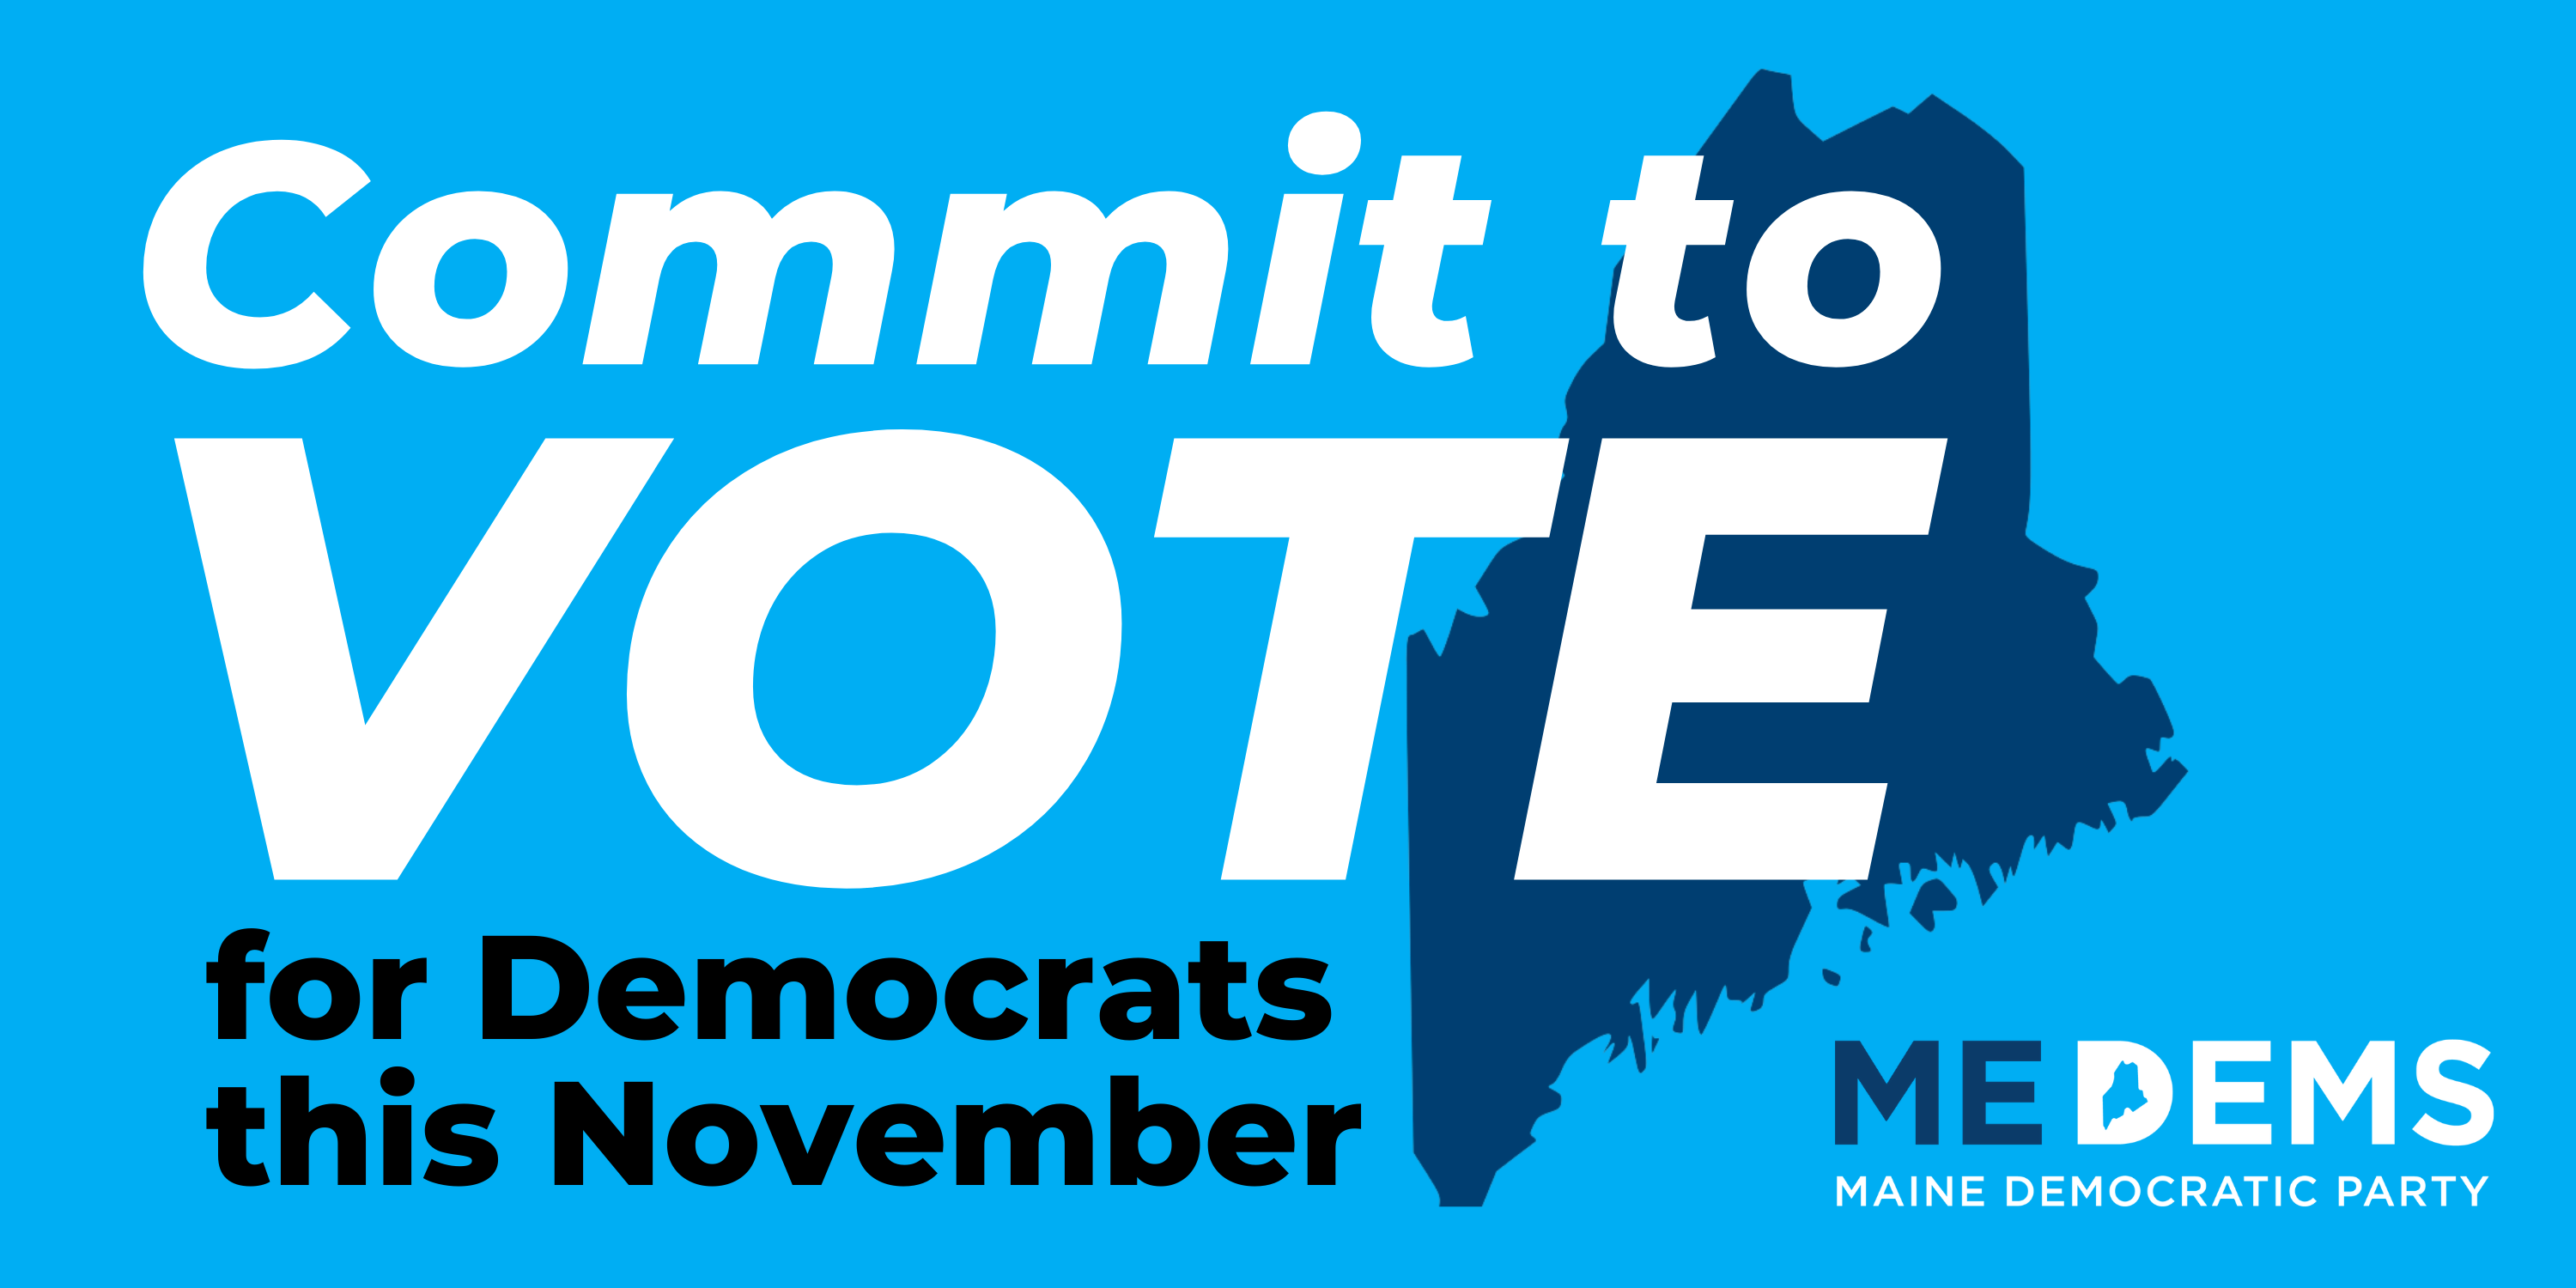 Commit to VOTE for Democrats this November